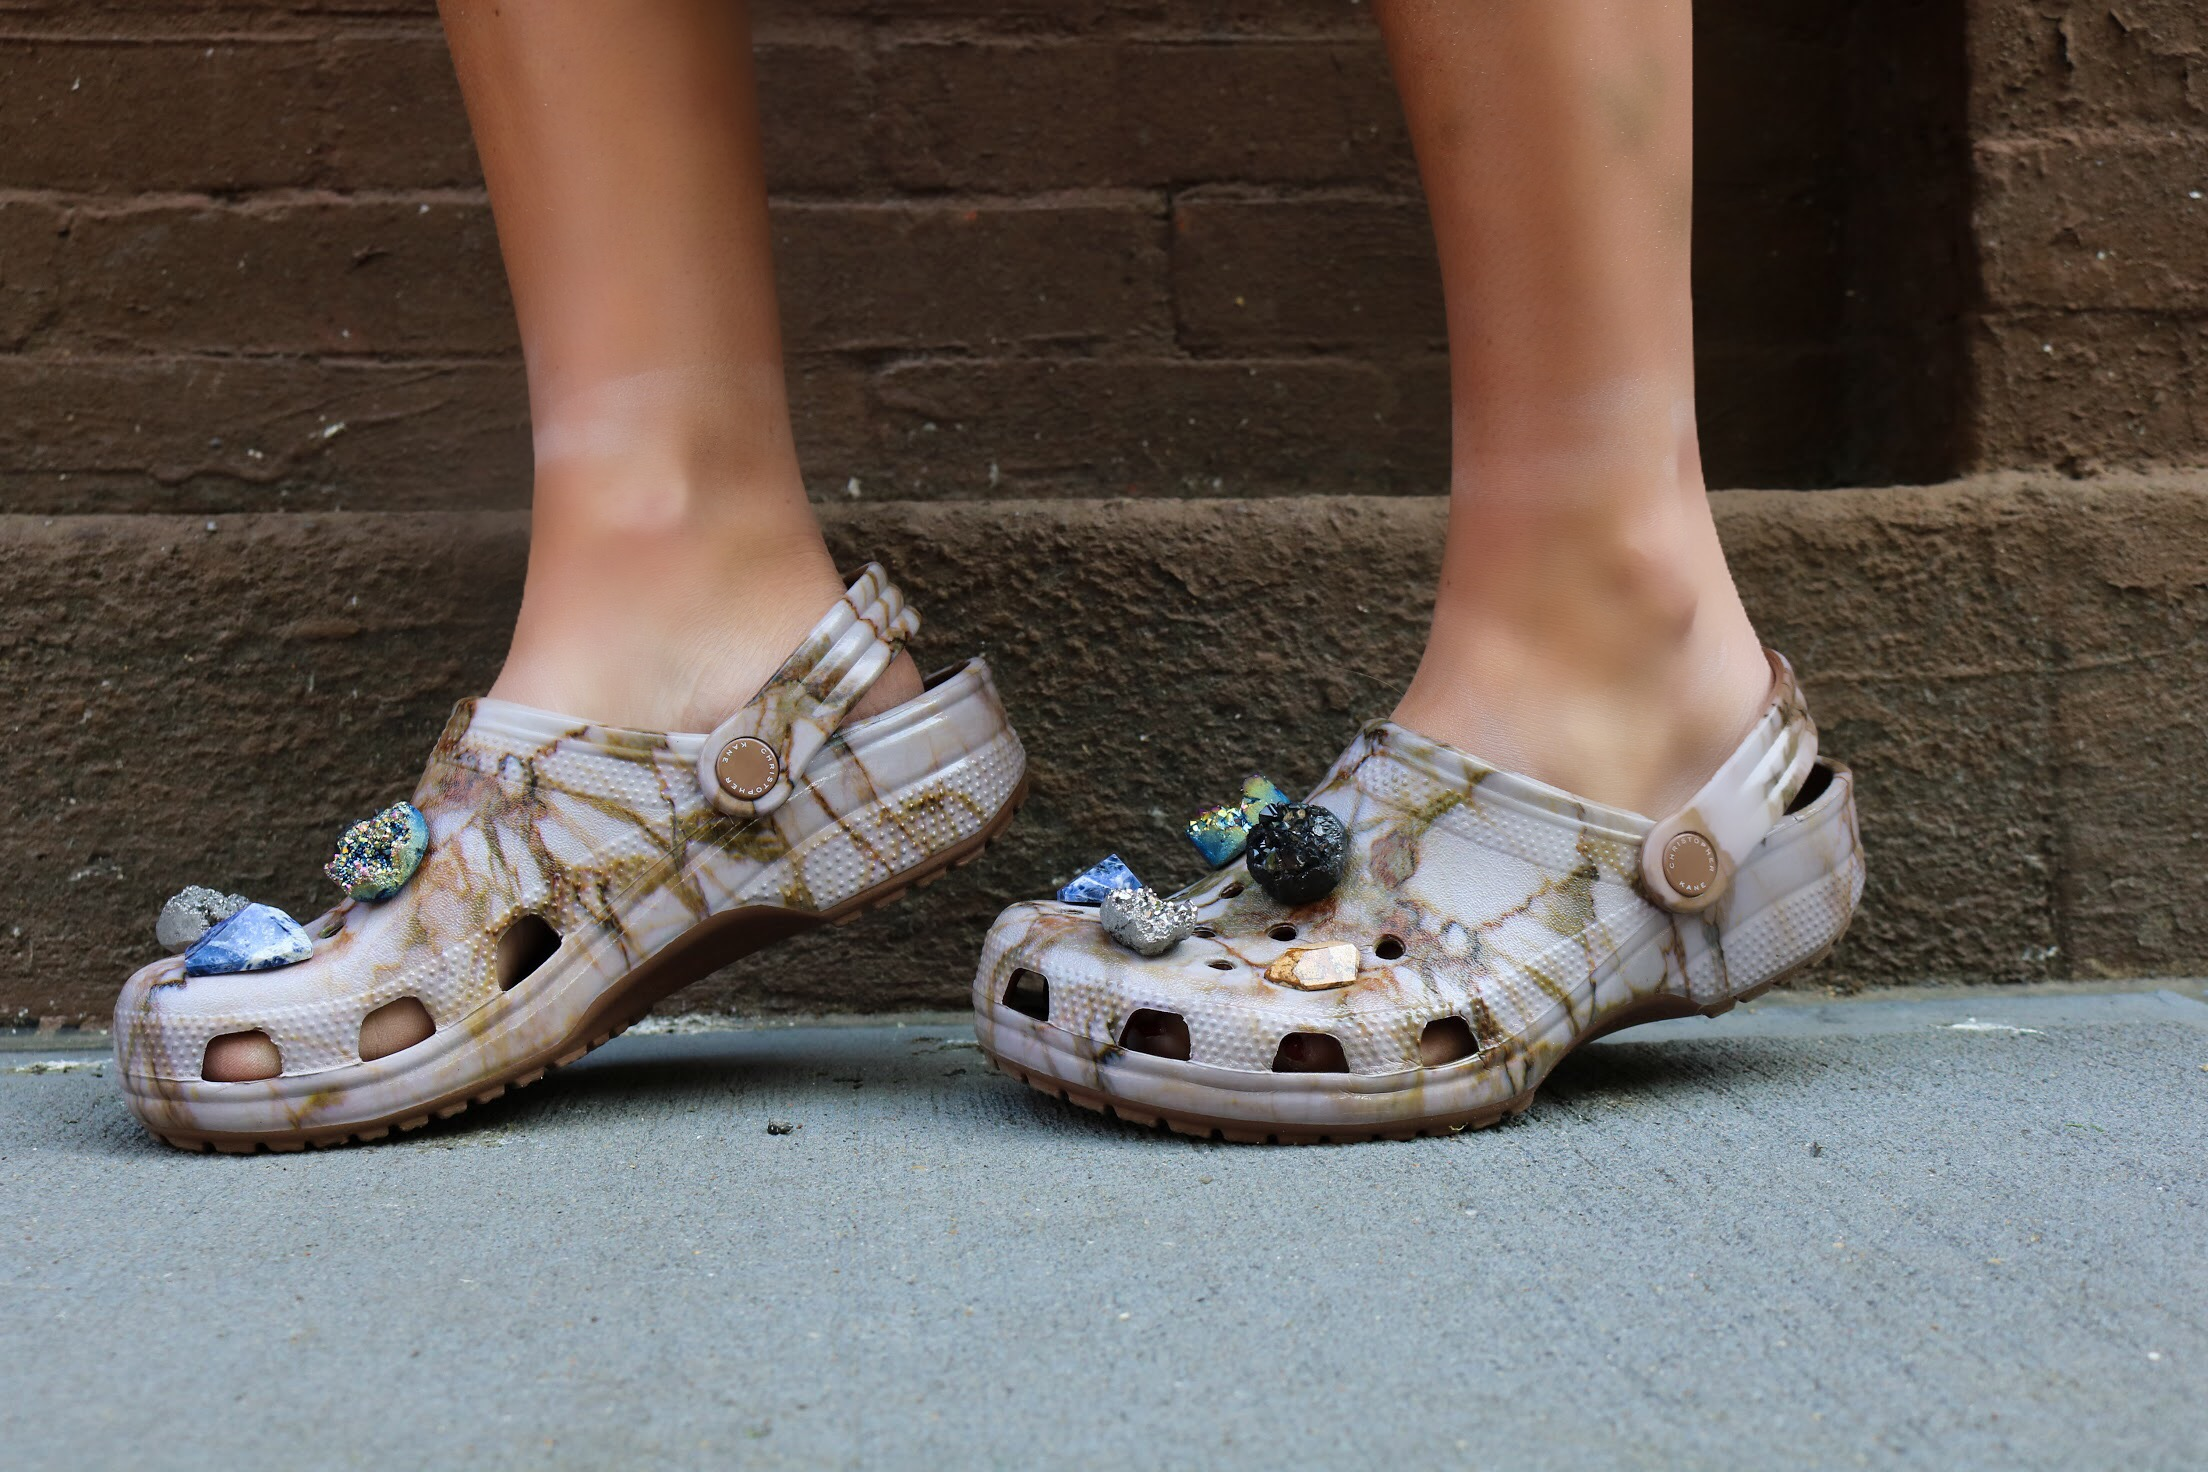 CHARLOTTE BICKLEY YIN 2MY YANG SISTER BLOGGER CROCS POST